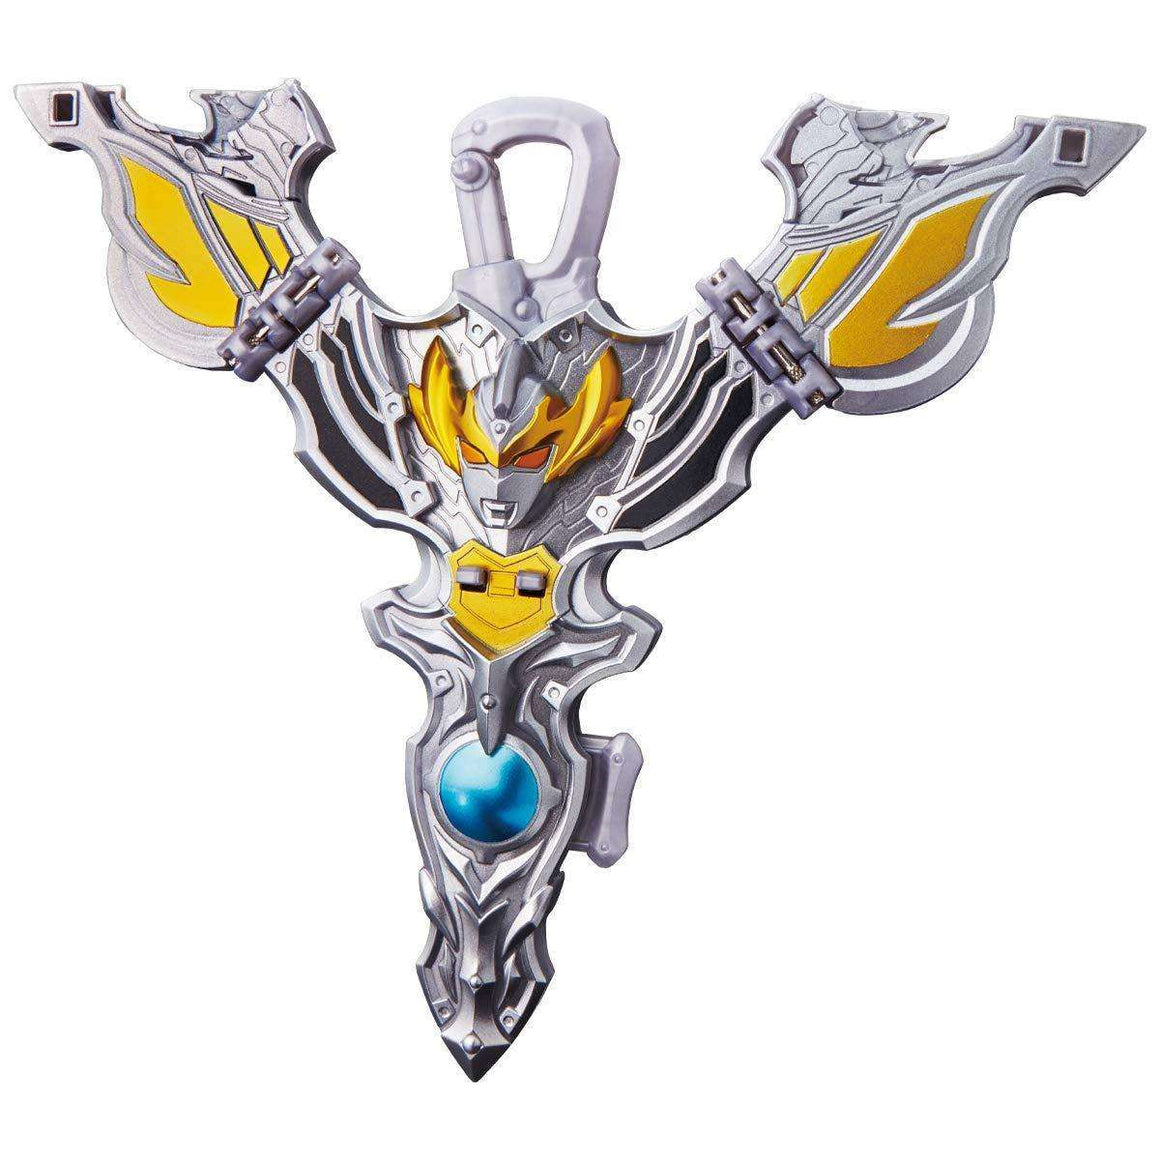 CSTOYS INTERNATIONAL:[Late Aug. 2019] Ultraman Taiga: DX Photon Earth Key Holder